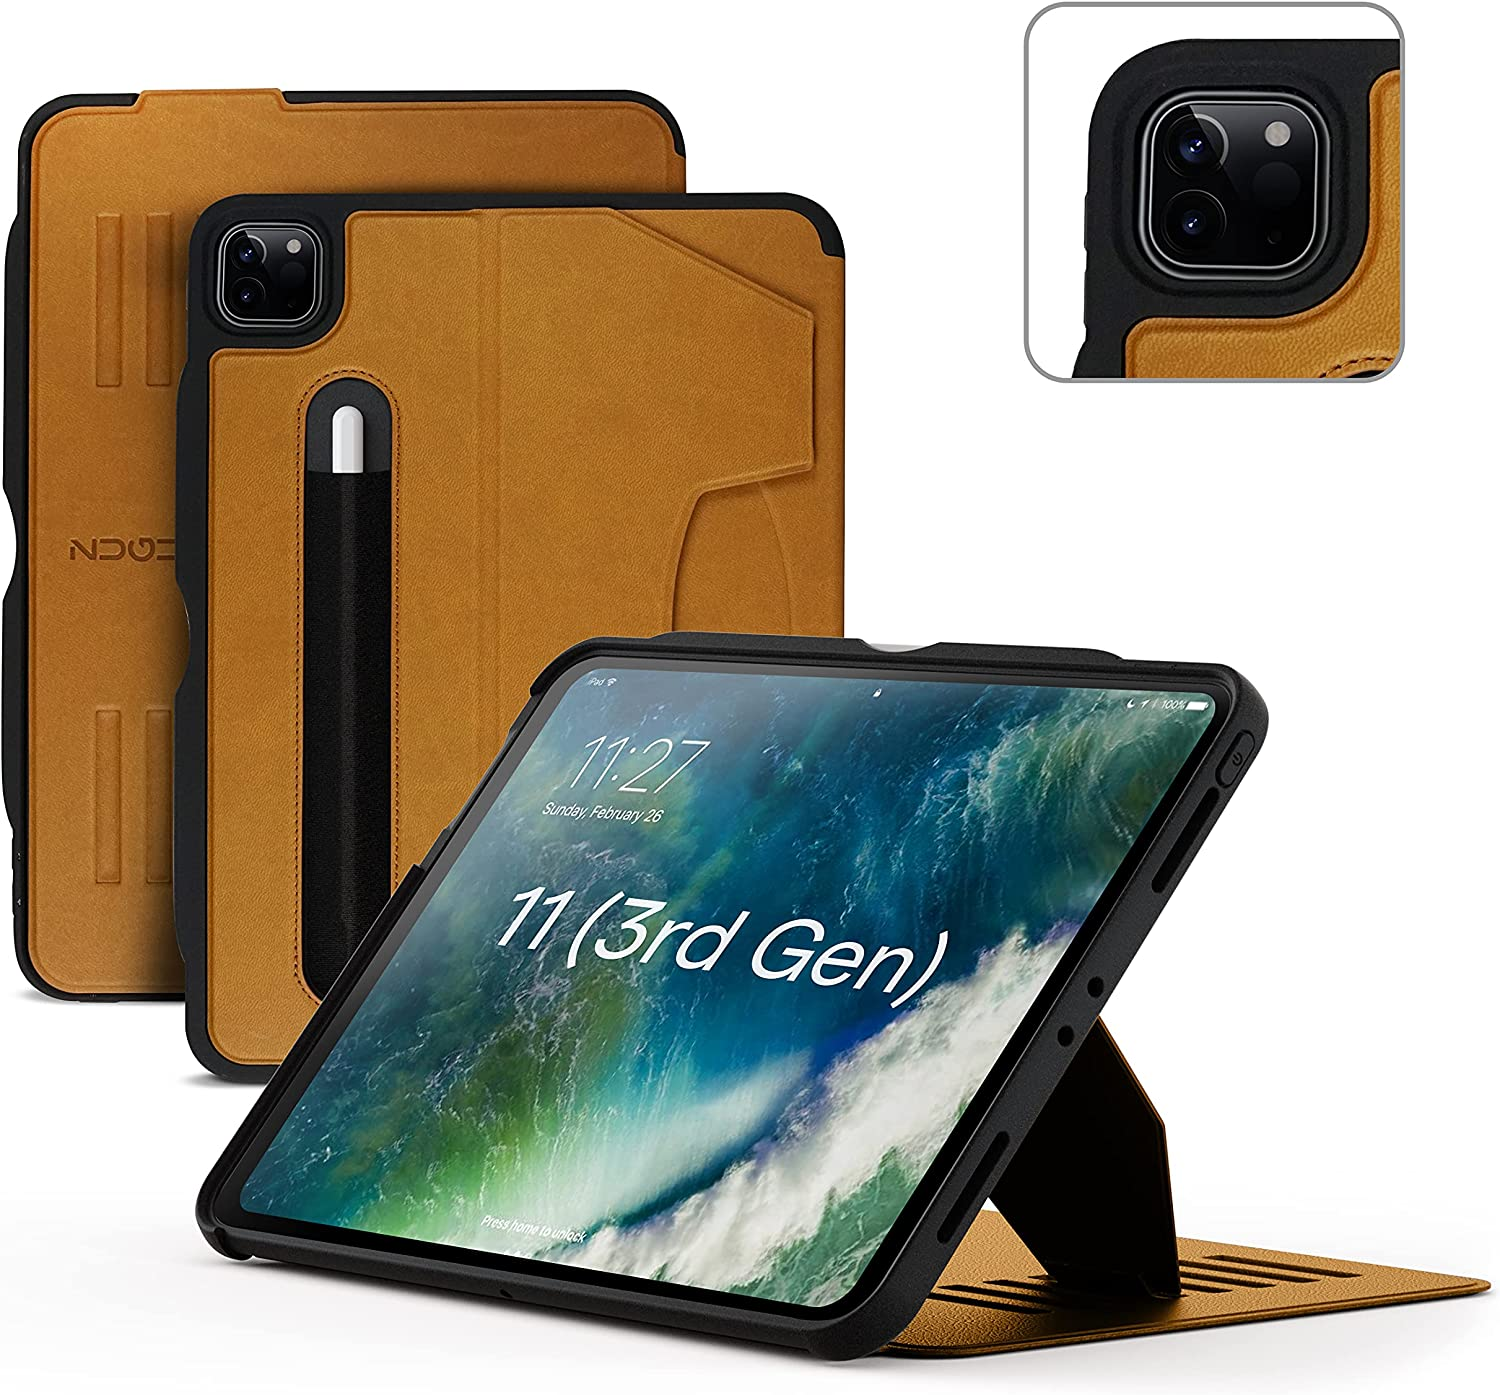 ZUGU Case for 2021/2020 iPad Pro 11 inch Gen 2/3 - Slim Protective Case - Wireless Apple Pencil Charging - Convenient Magnetic Stand & Sleep/ Wake Cover - Cognac Brown